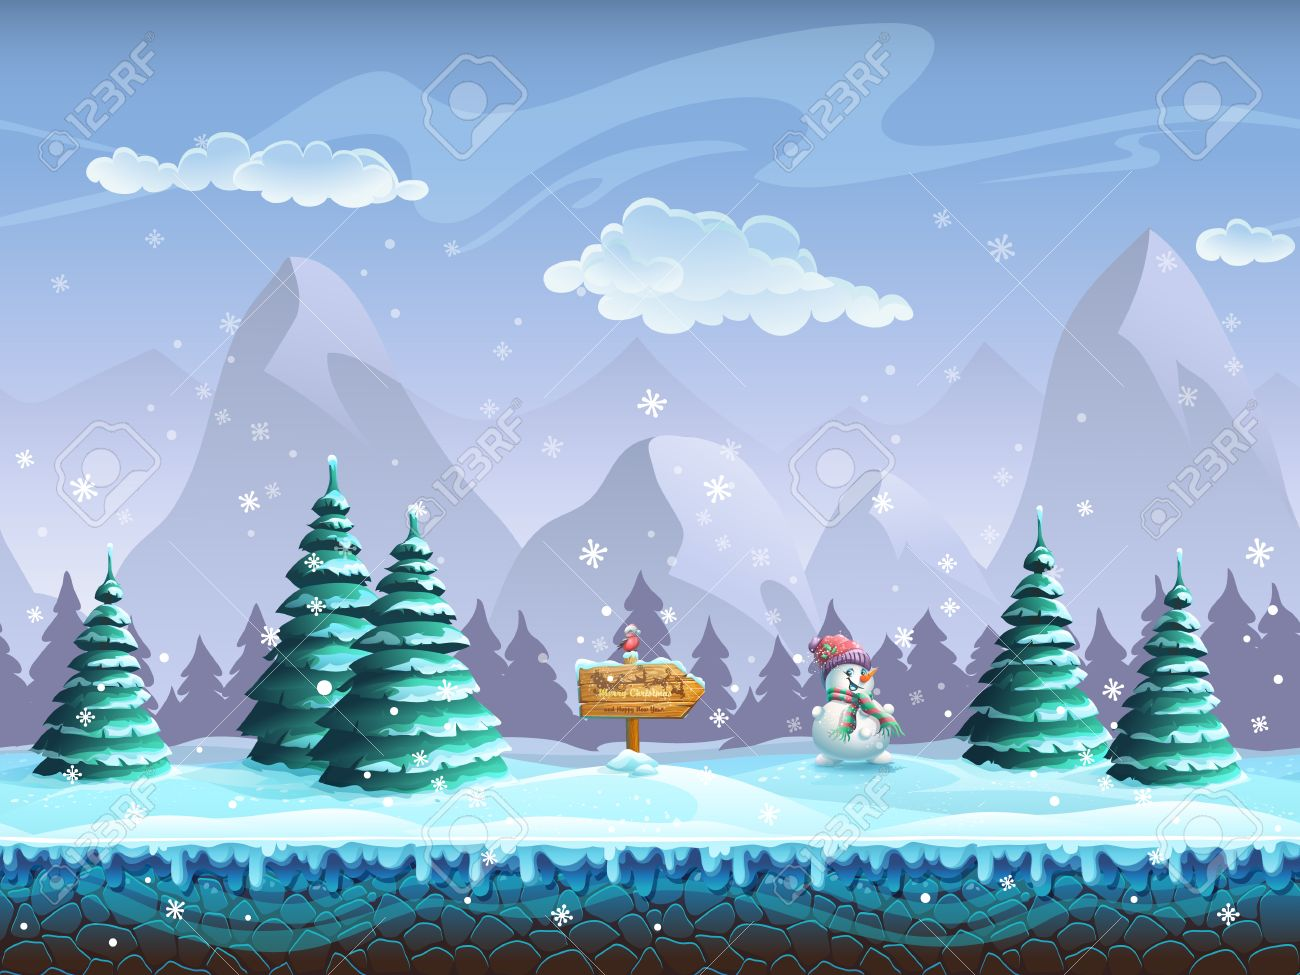 Seamless cartoon background with winter landscape sign snowman and bullfinch - 47748068